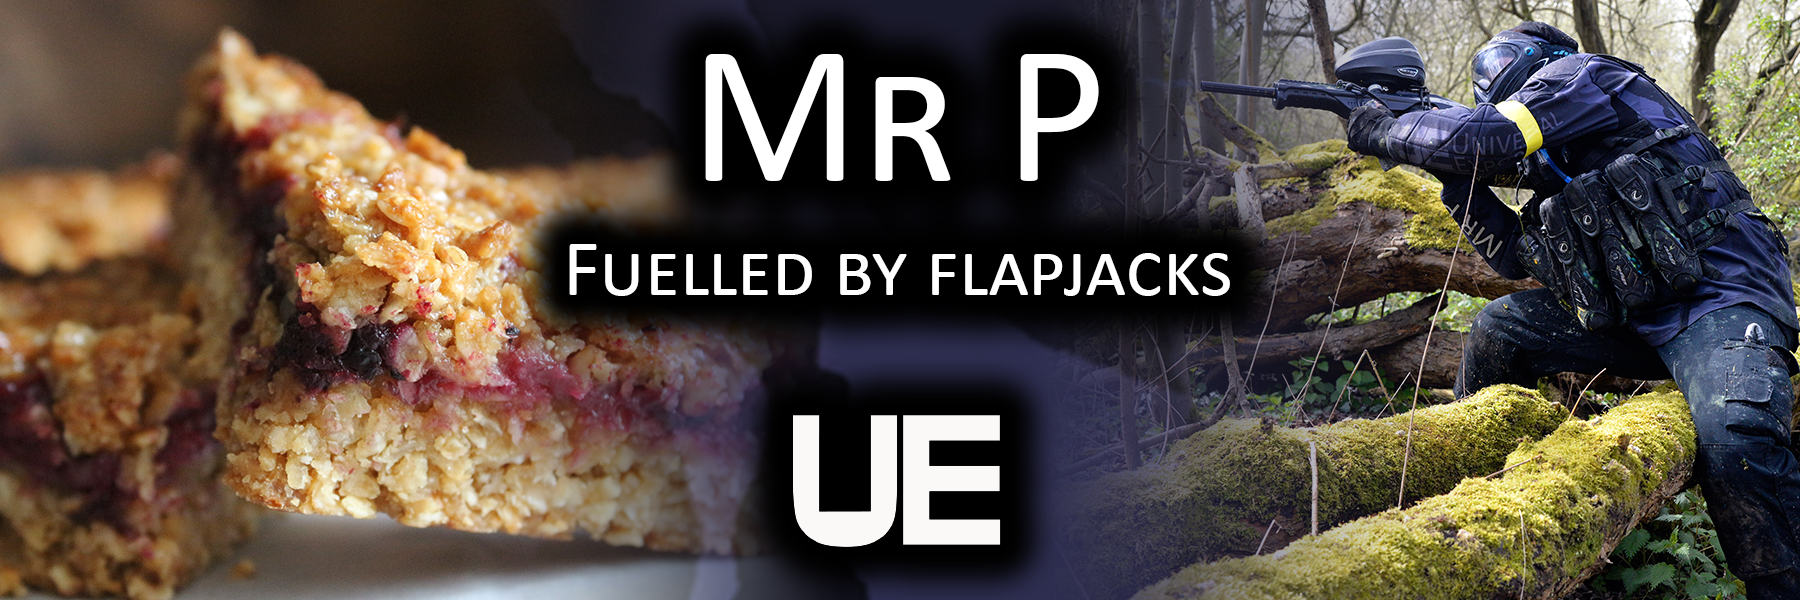 Mr P | Fuelled by flapjacks